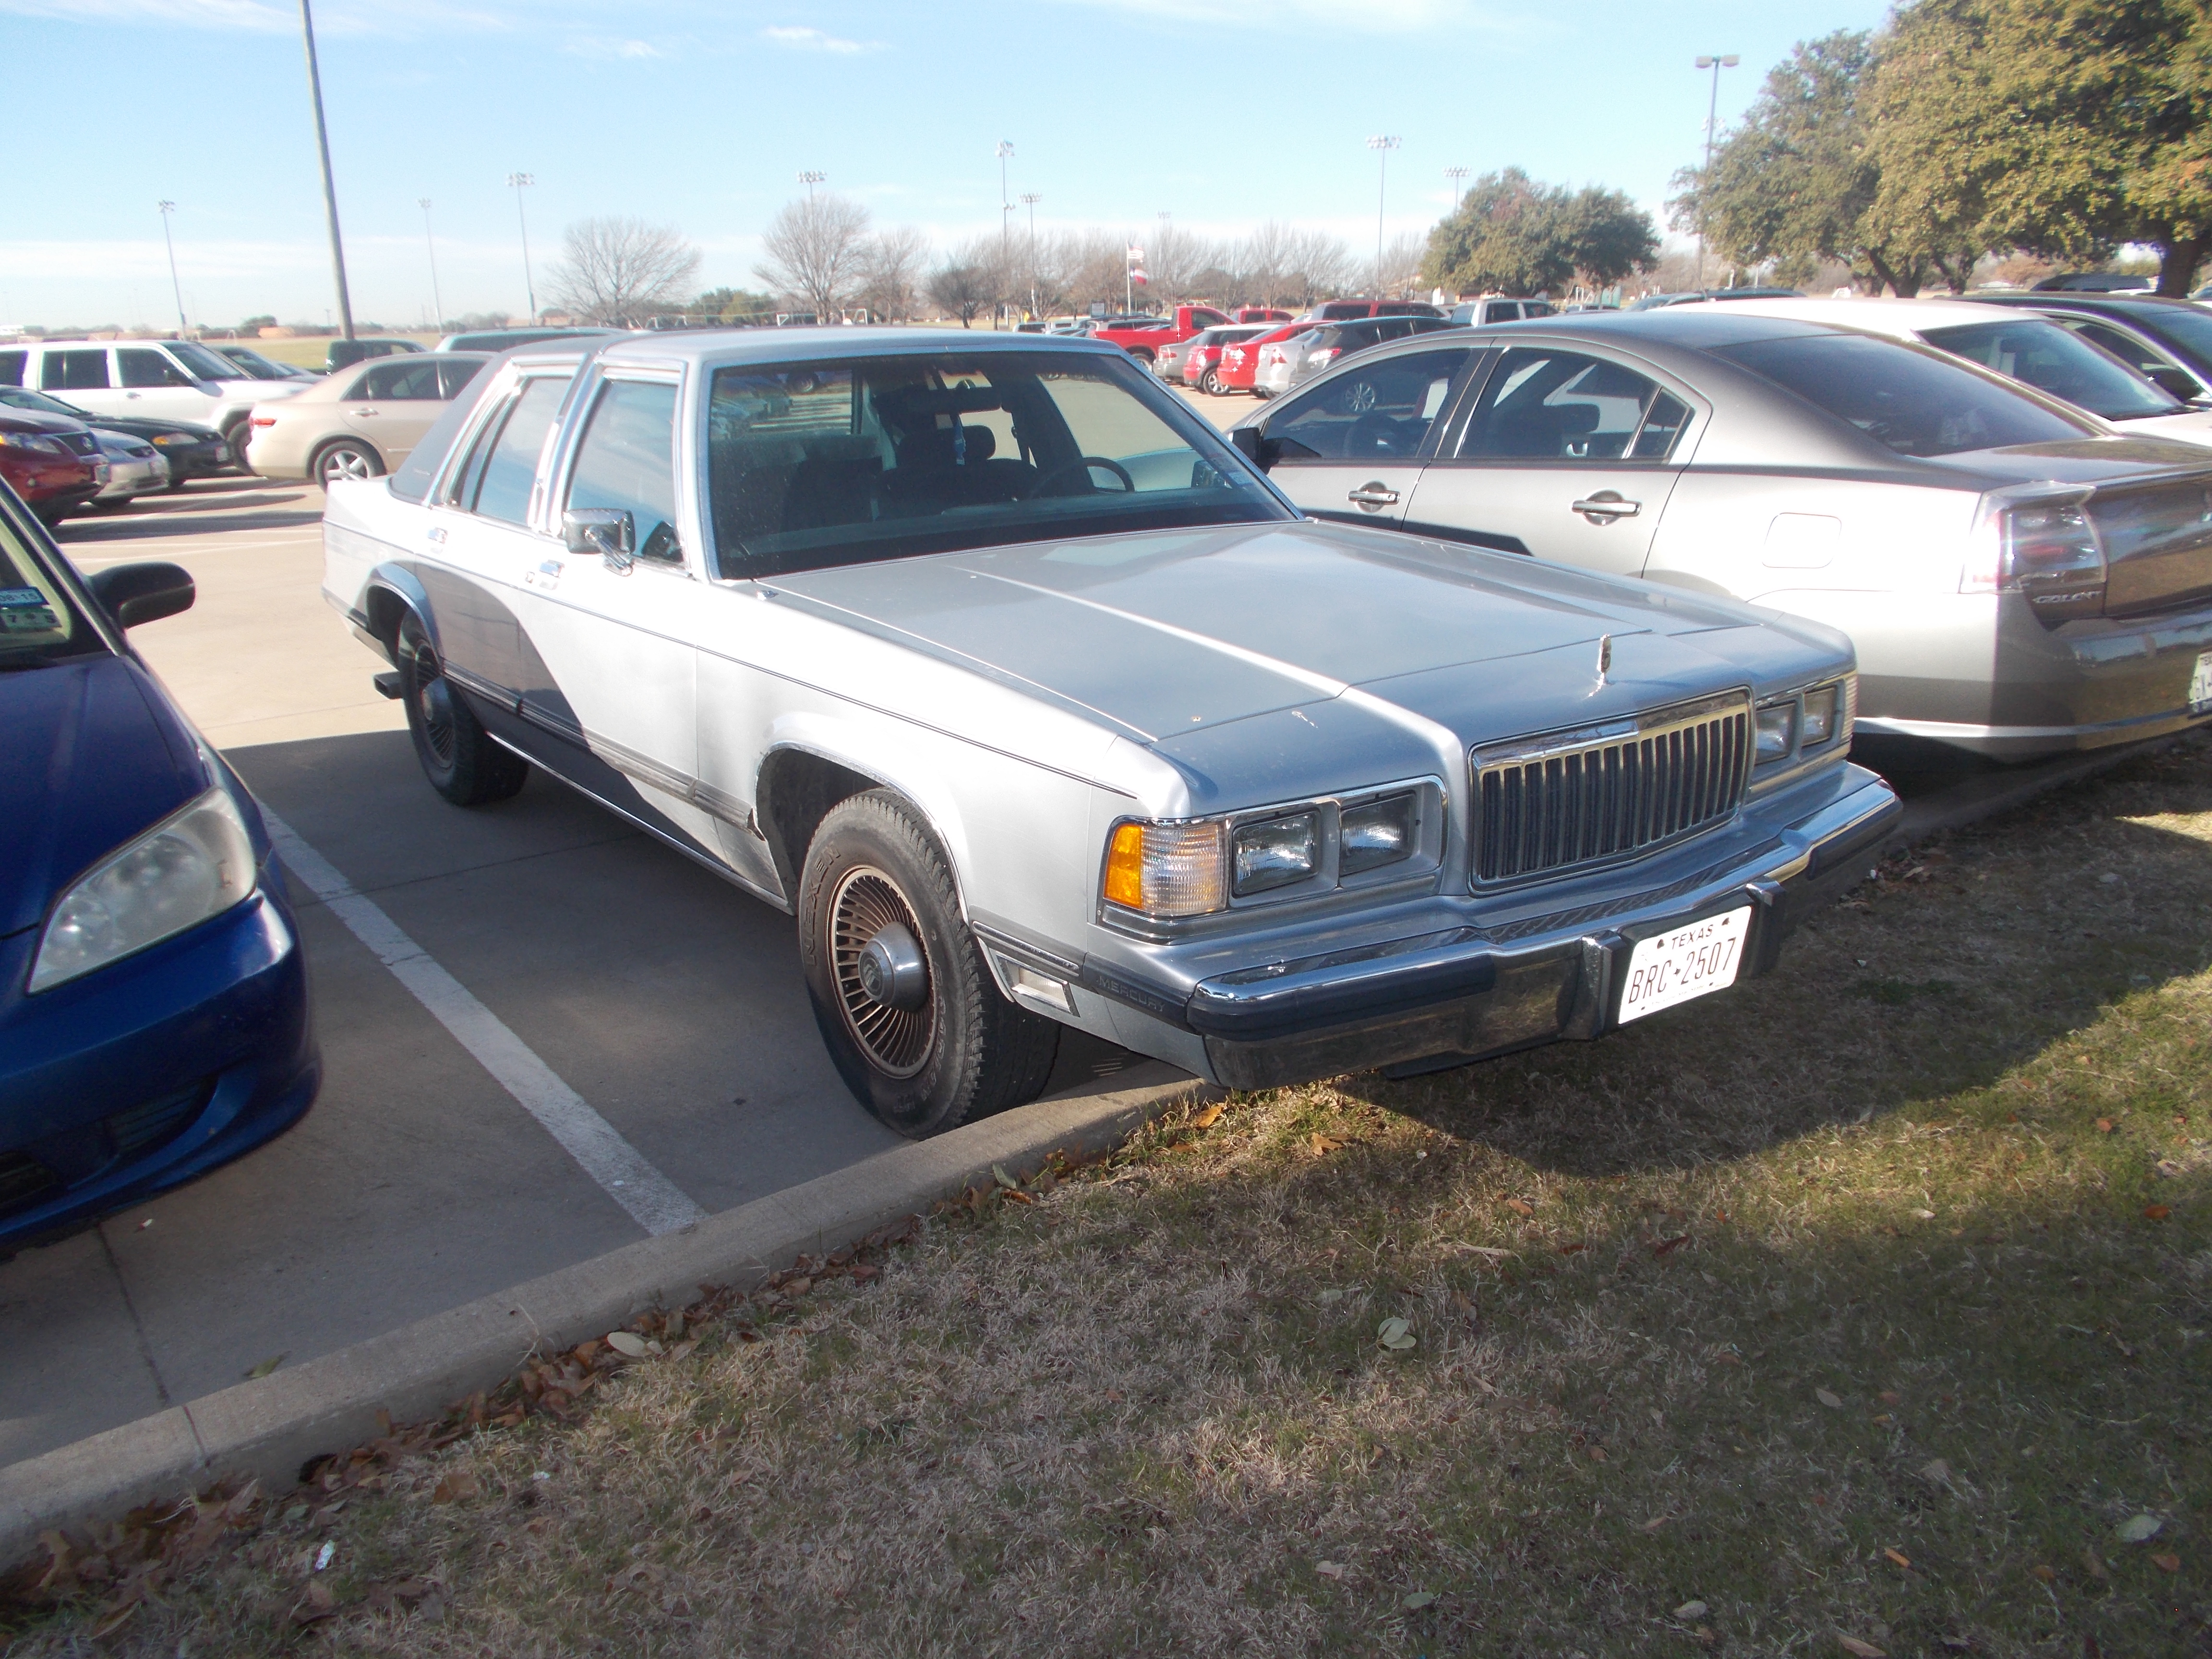 1991 Mercury Grand Marquis LS by TR0LLHAMMEREN on DeviantArt